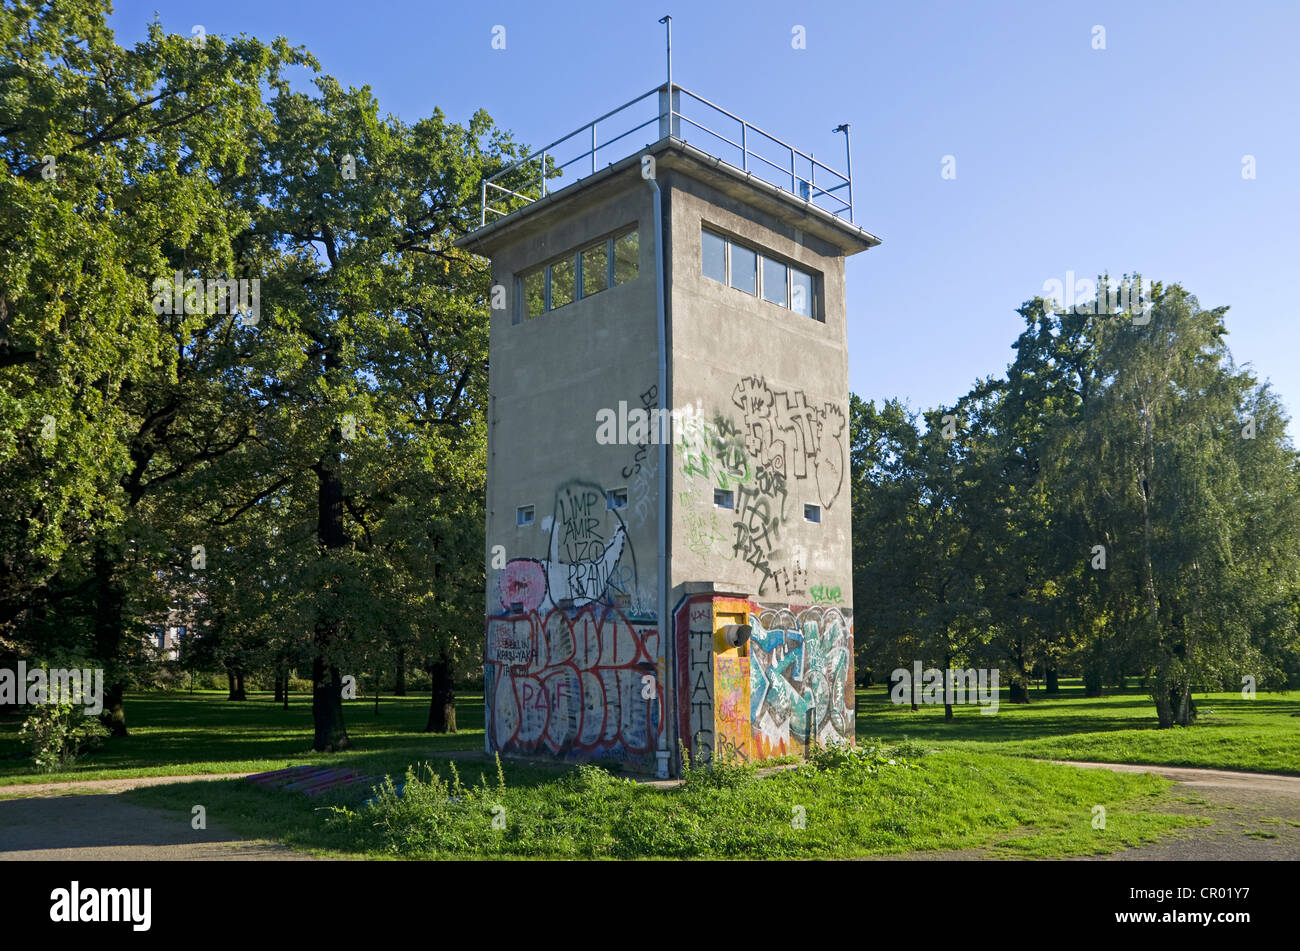 Historic watchtower of the former GDR, East Germany, Treptow district, Berlin, Germany, Europe - Stock Image